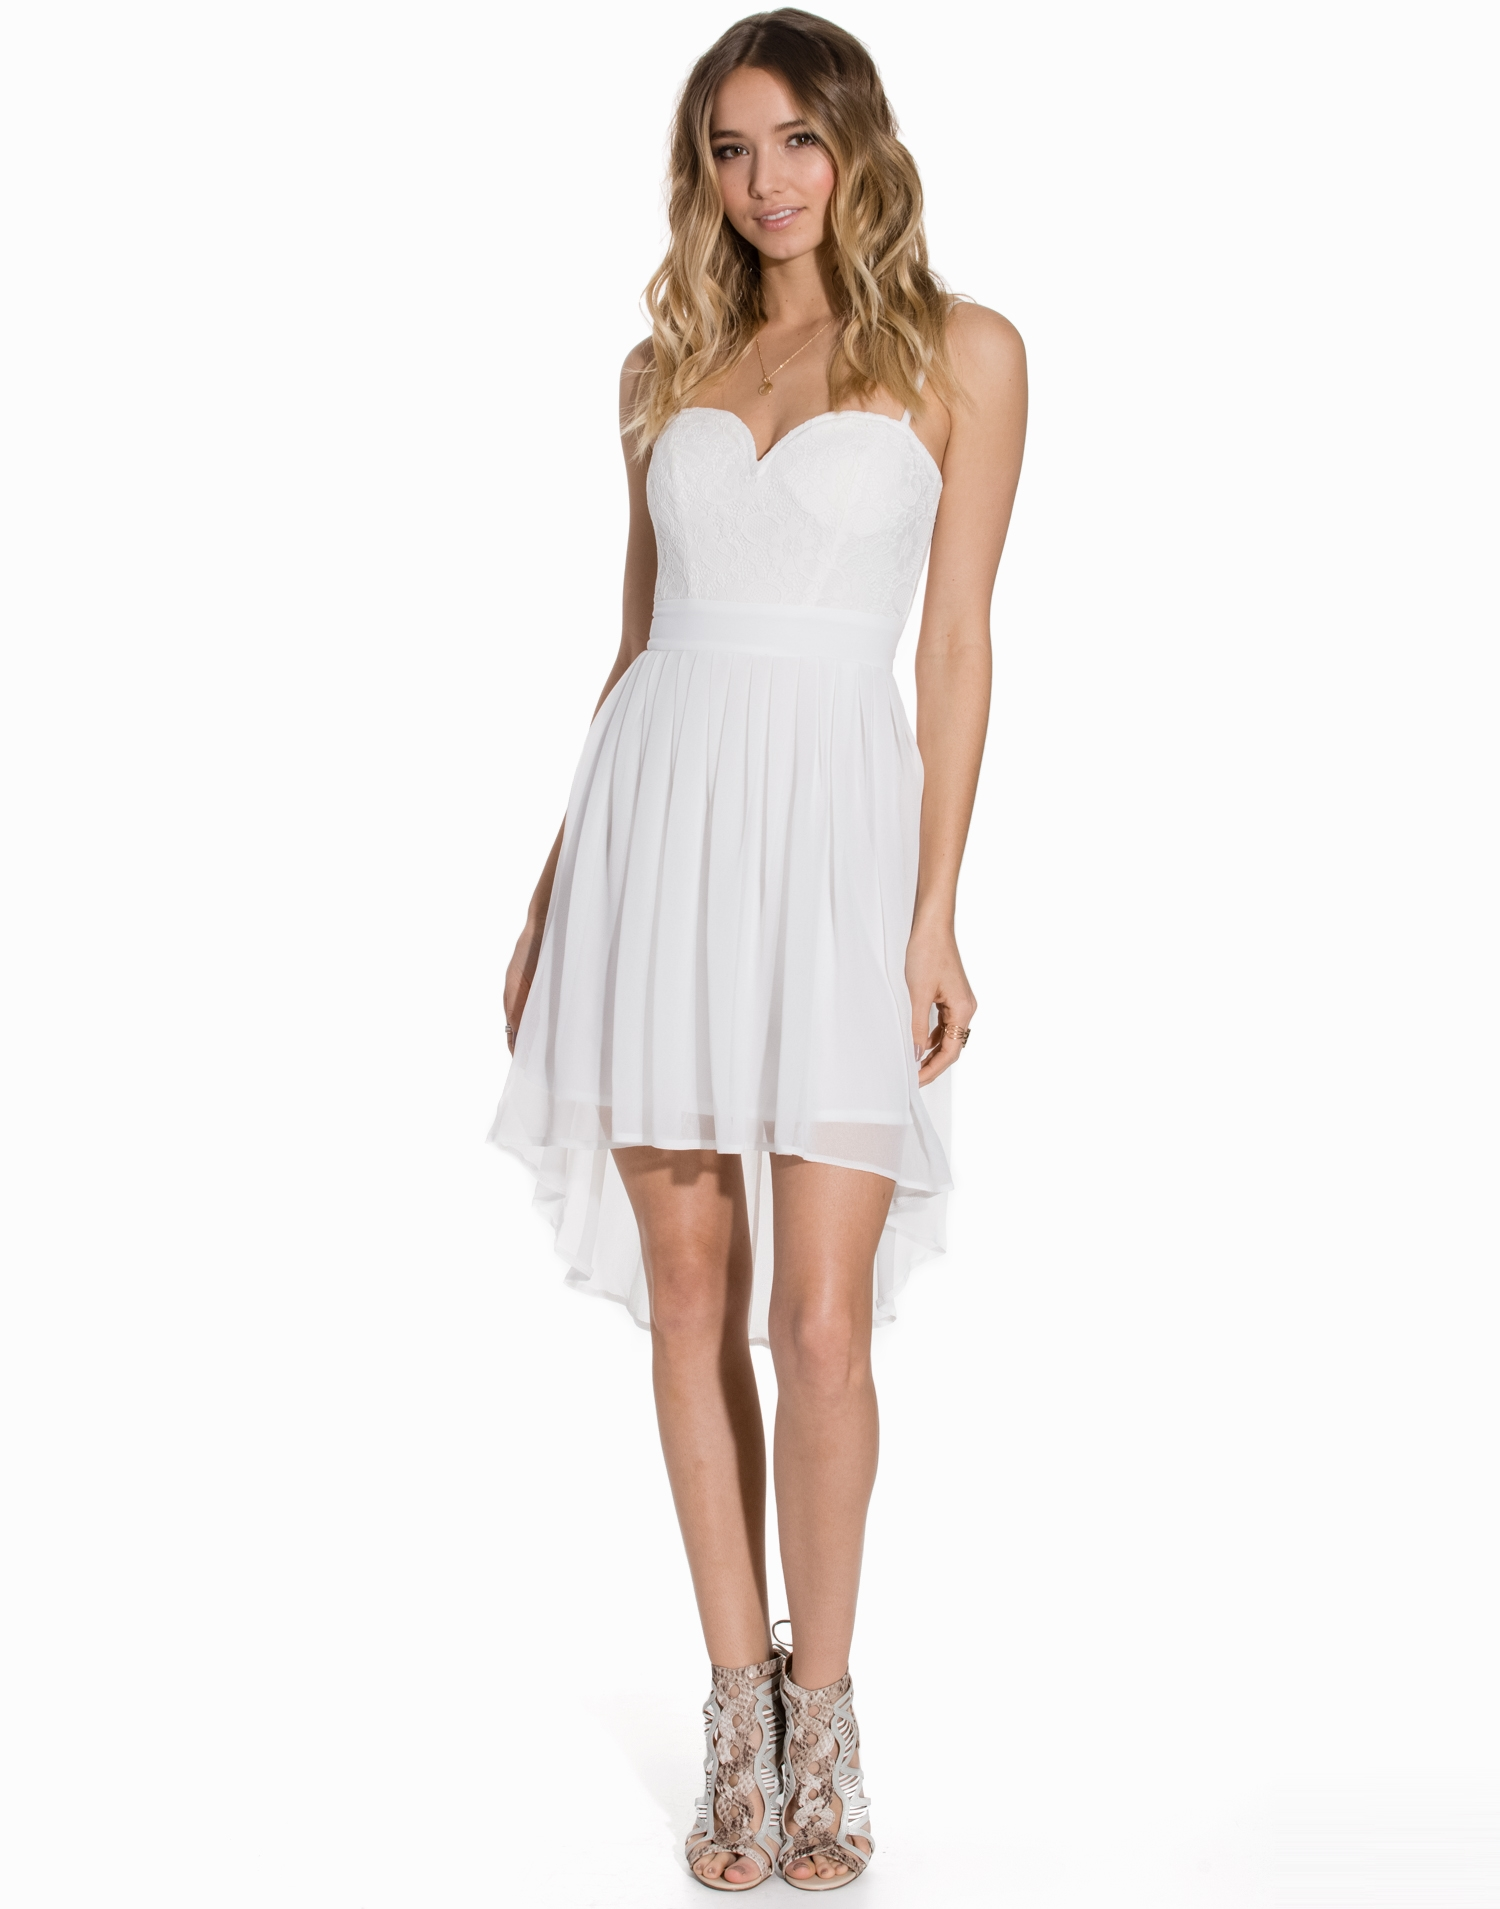 Elise Ryan Lace Bustier Chiffon Dress Skater Dresses Ivory